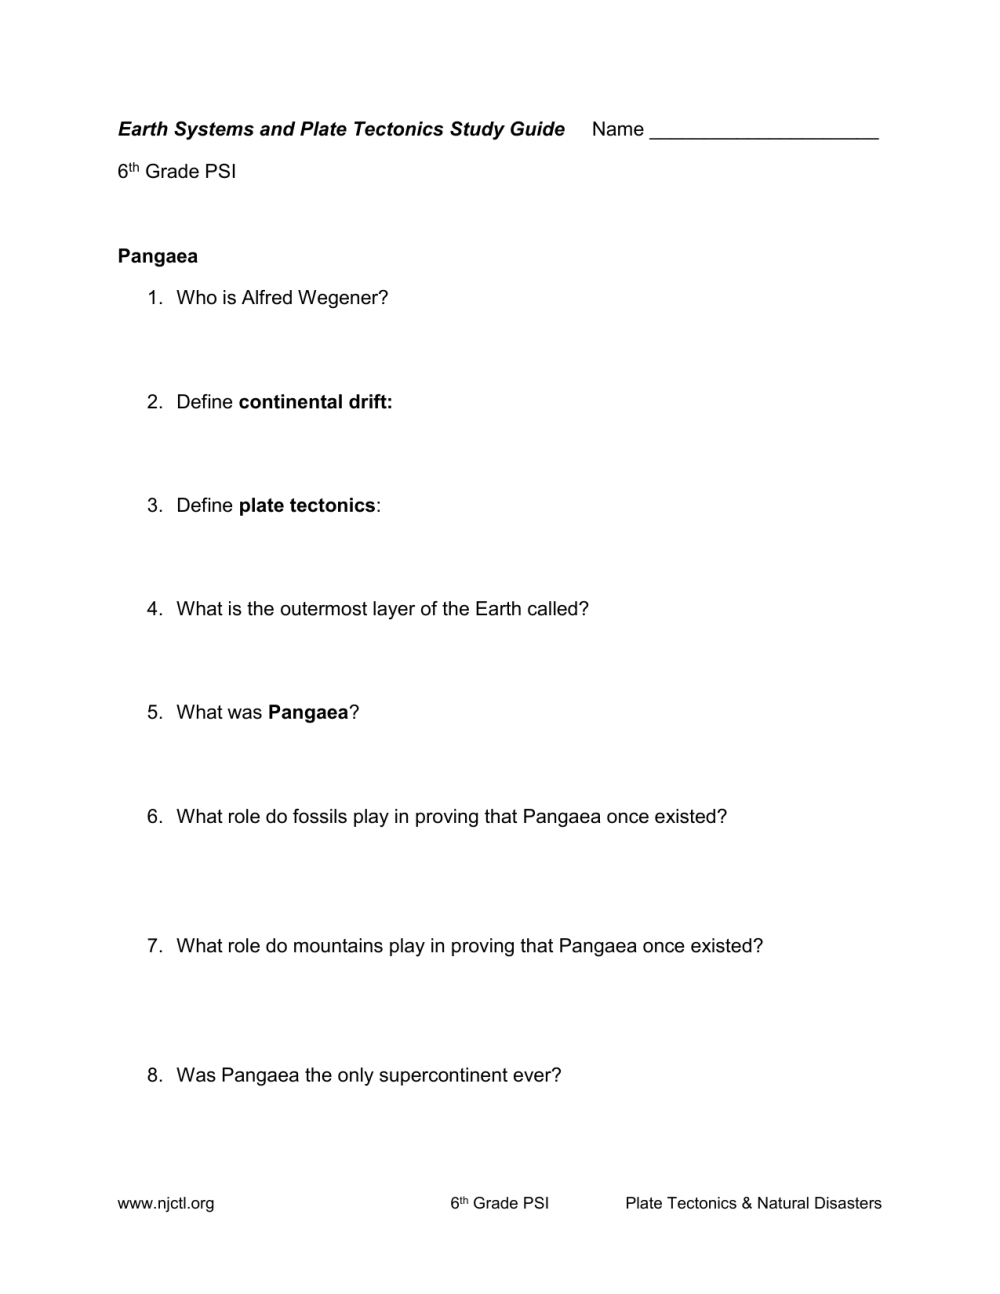 medium resolution of Earth Systems and Plate Tectonics Study Guide Name 6th Grade